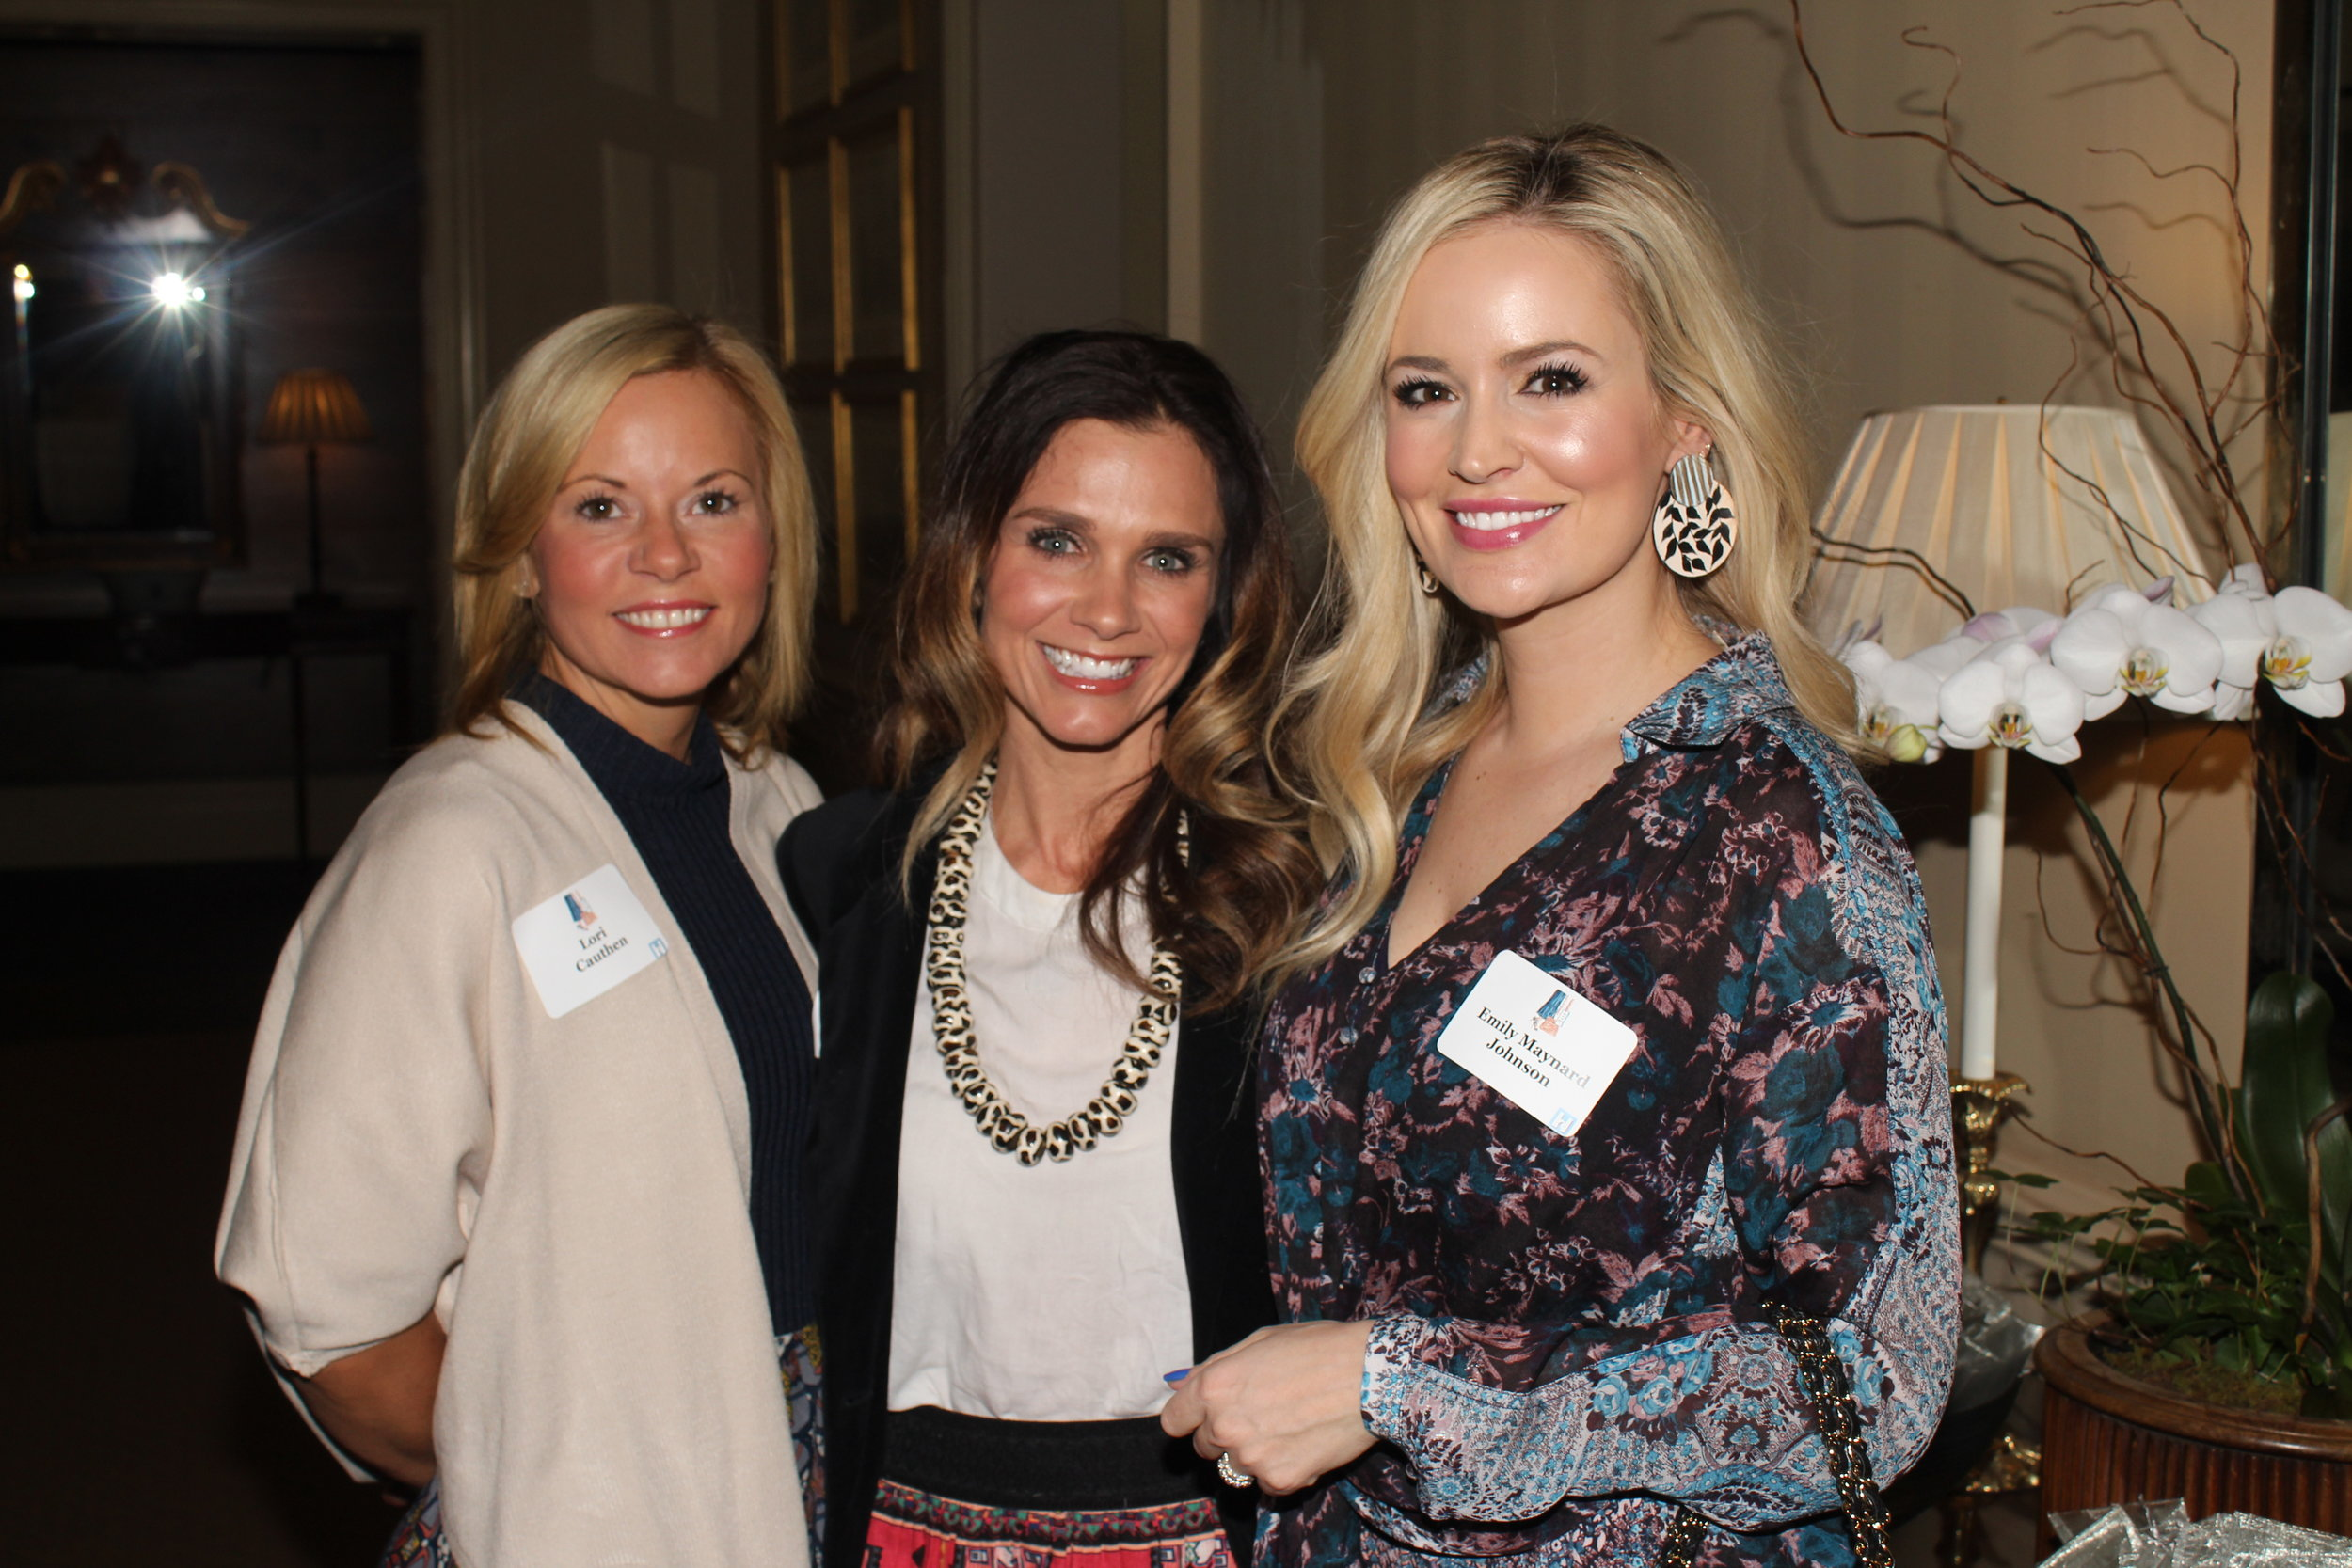 Emily Maynard Johnson, right, was one of the committee members.